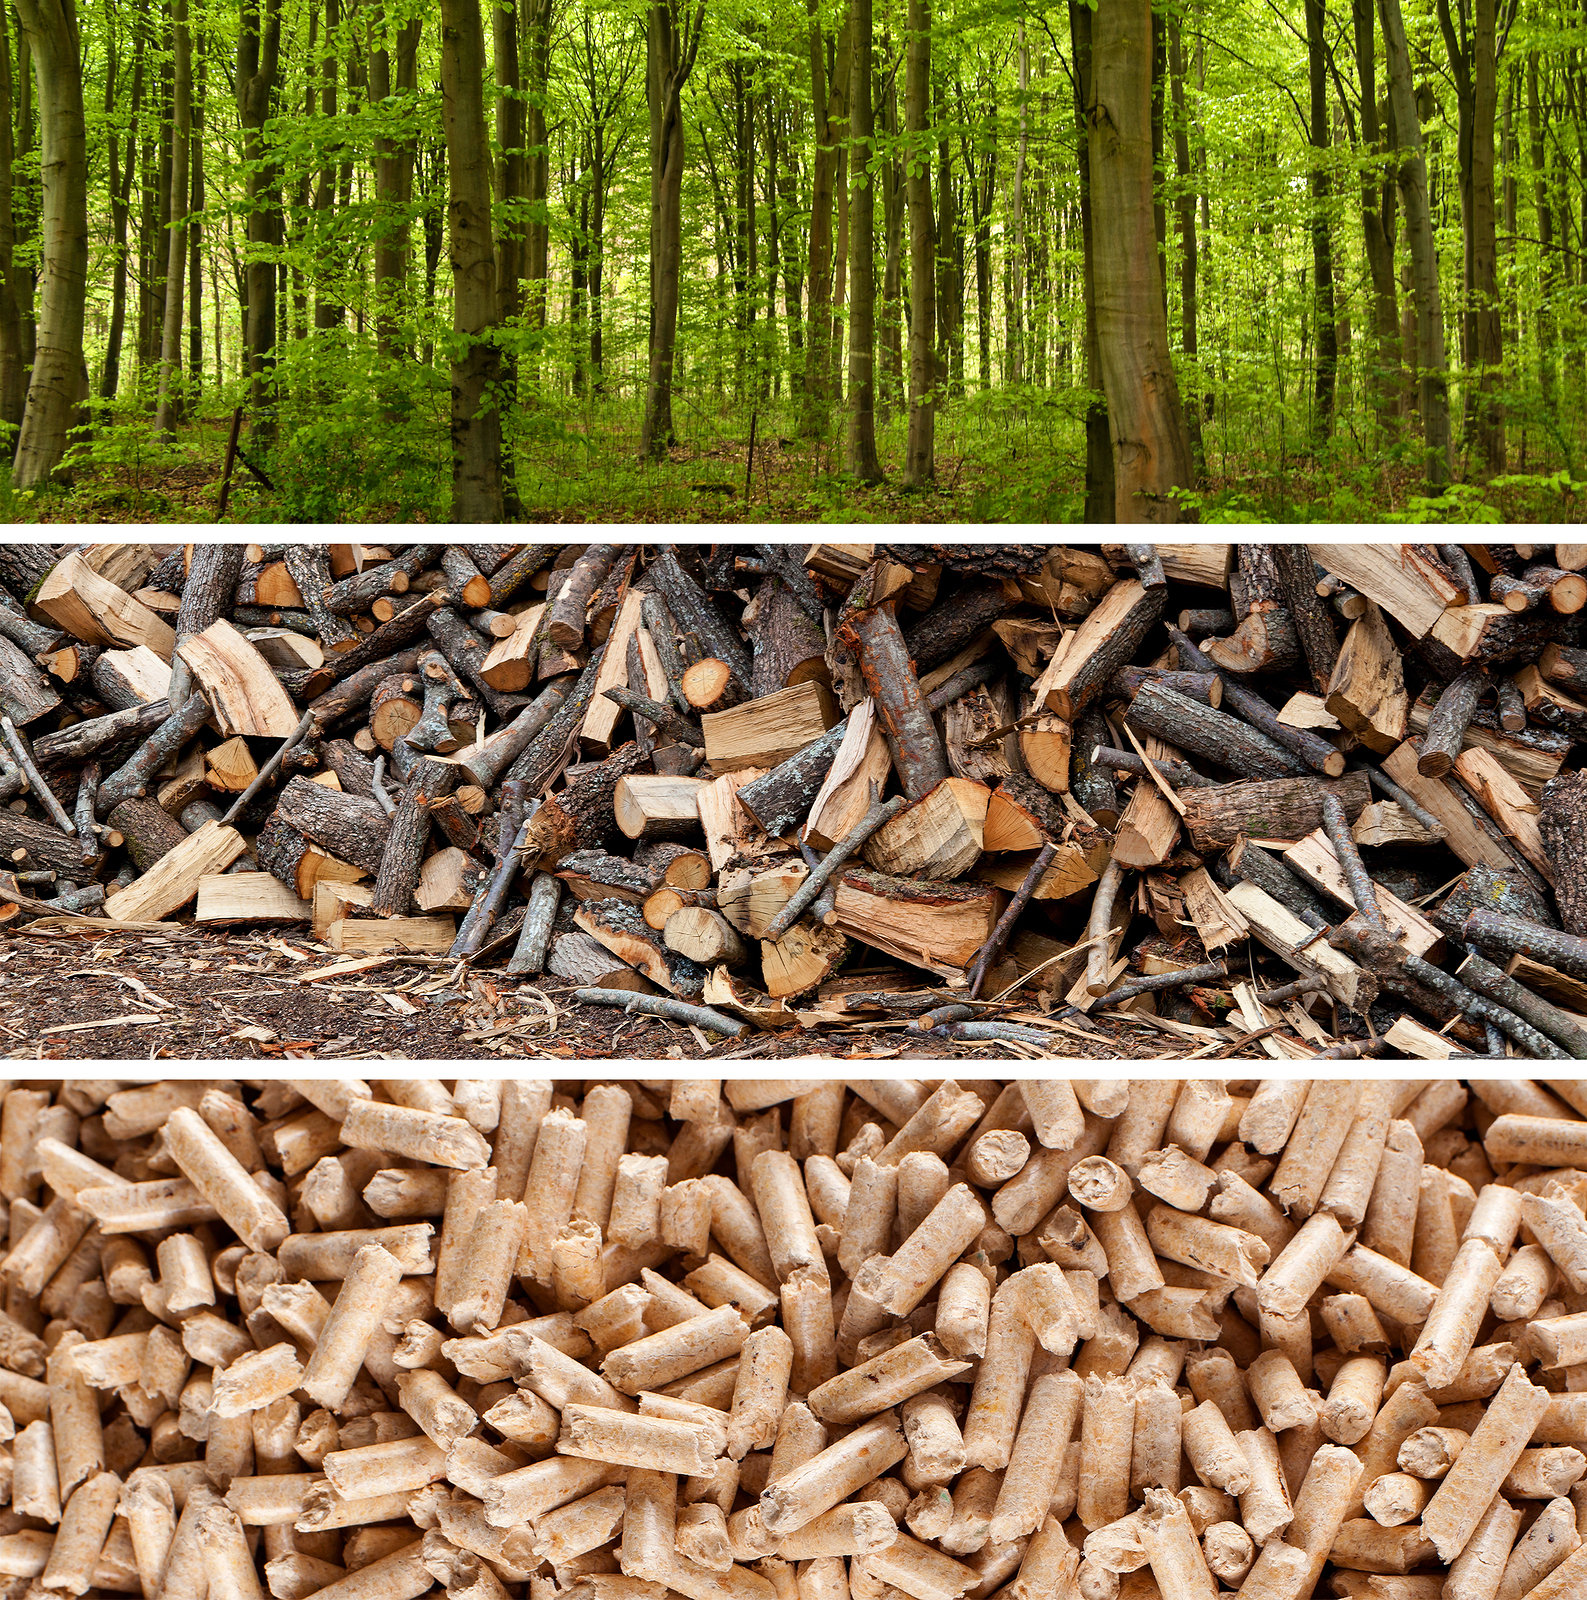 Wood pellets renewable but not carbon neutral